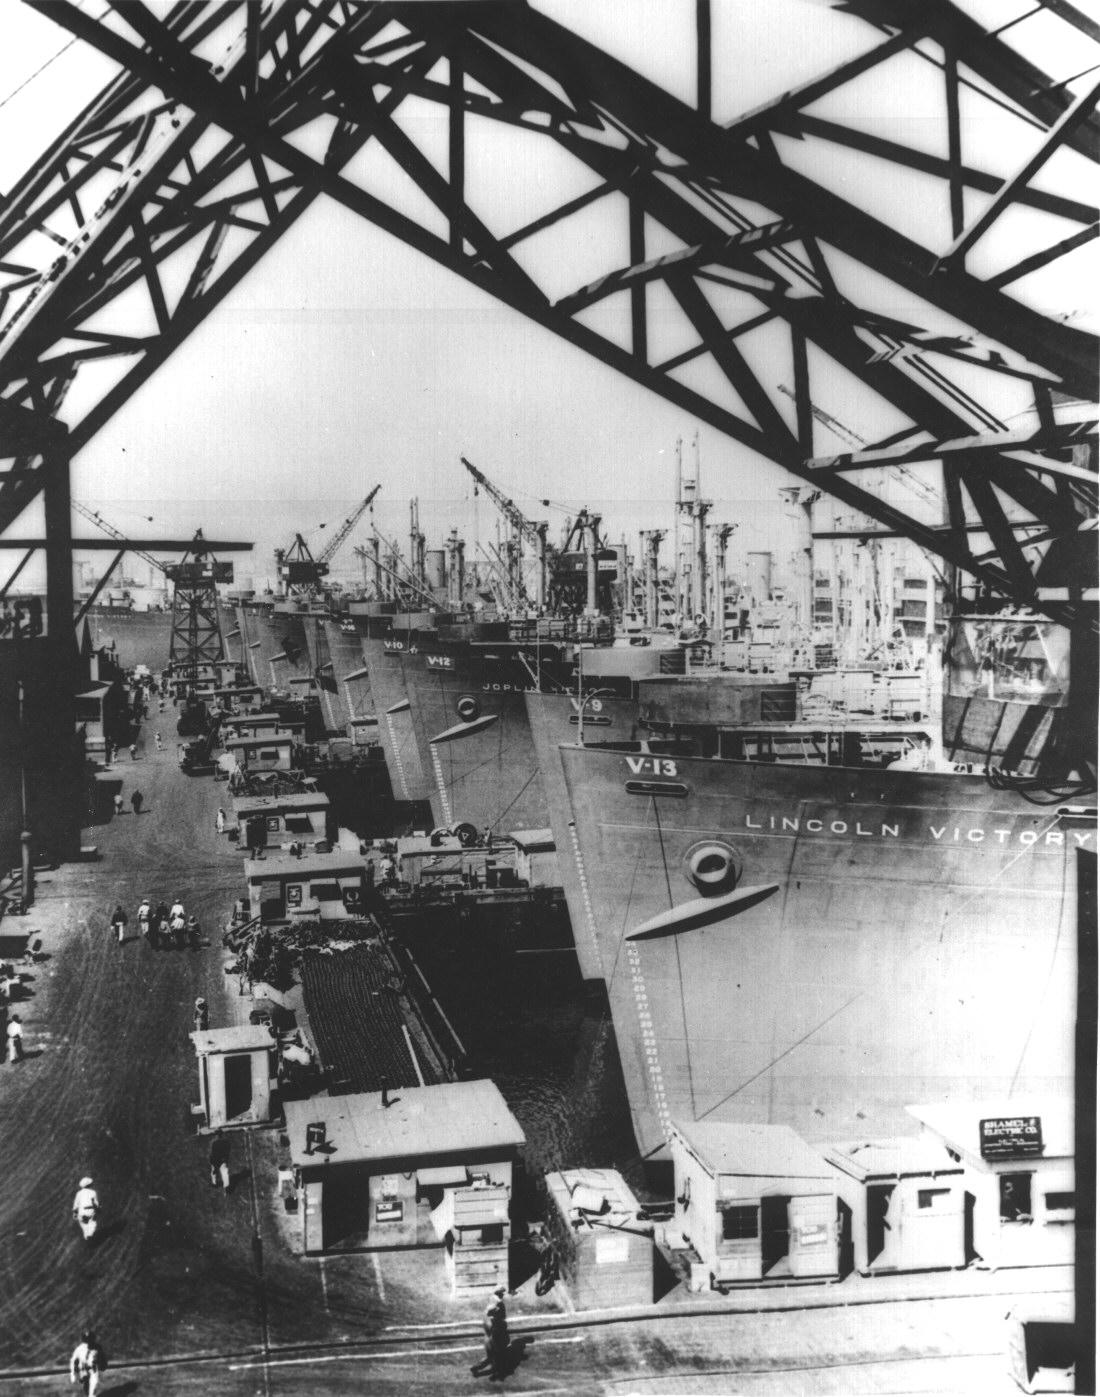 Victory Ships At A Naval Shipyard In California